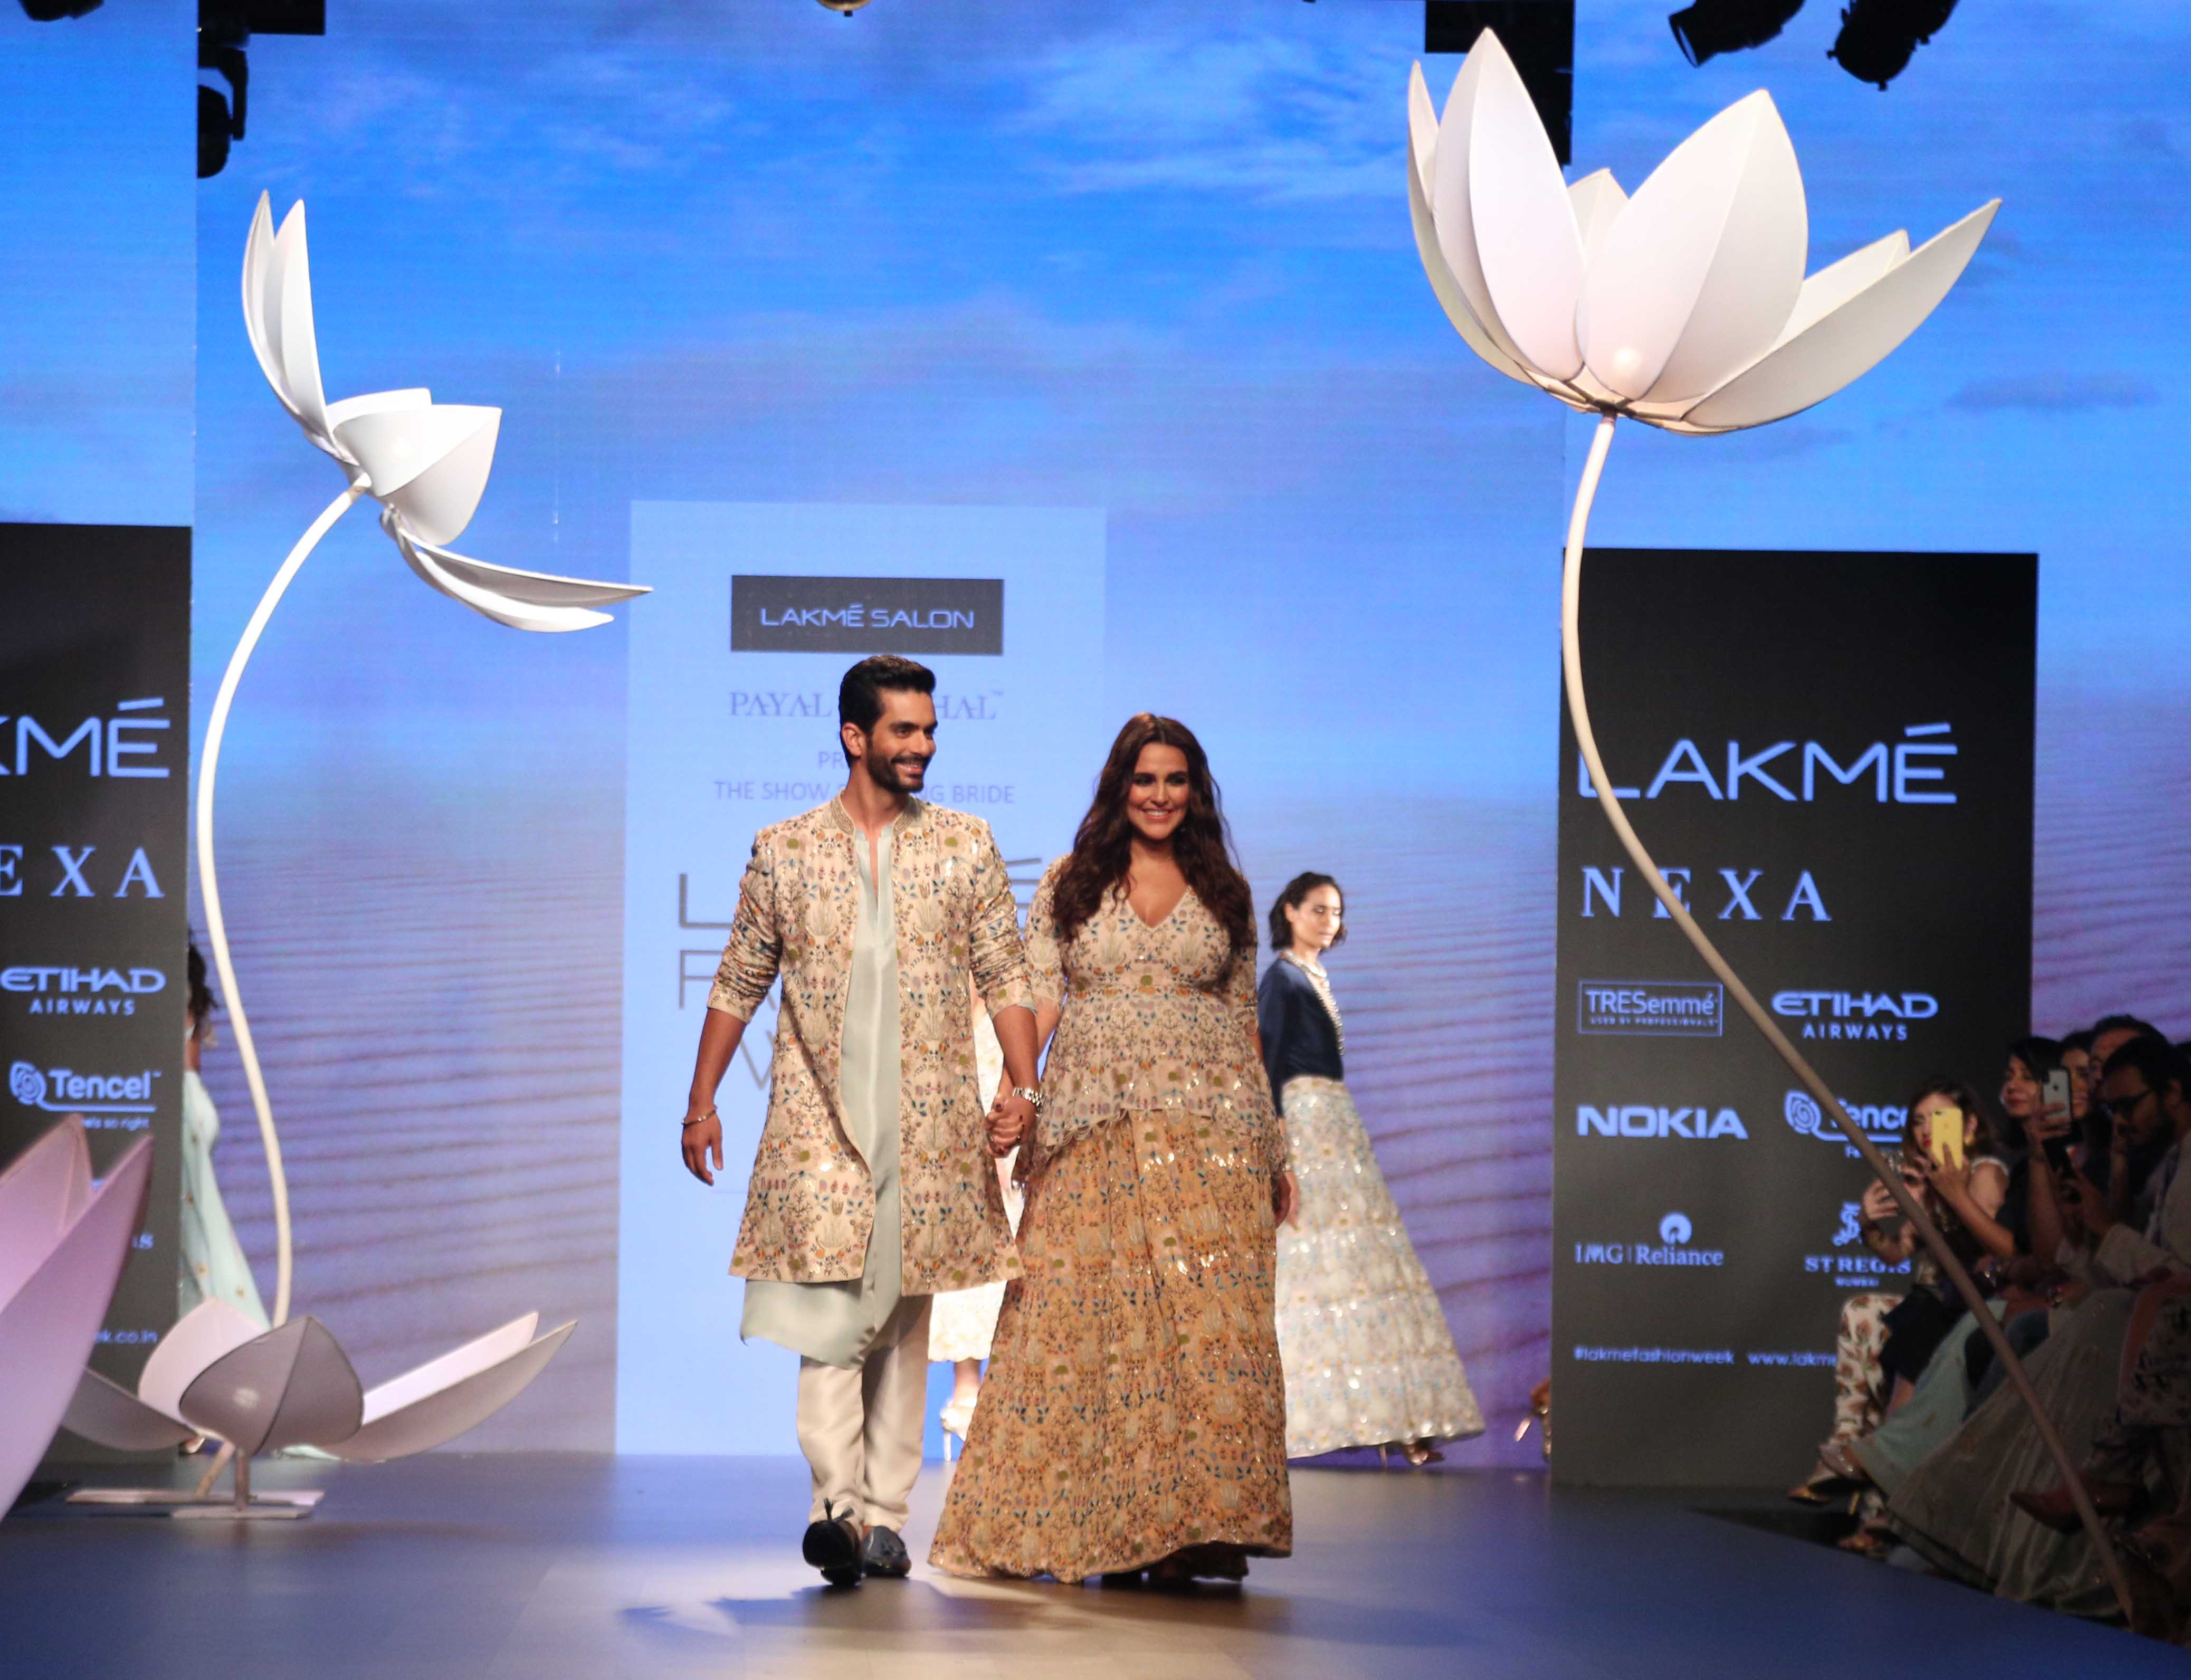 lfw 2018 DAY 4 SHOW 4 LAKME SALON AND PAYAL SINGHAL PRESENT THE SHOW STOPPING BRIDE (31)